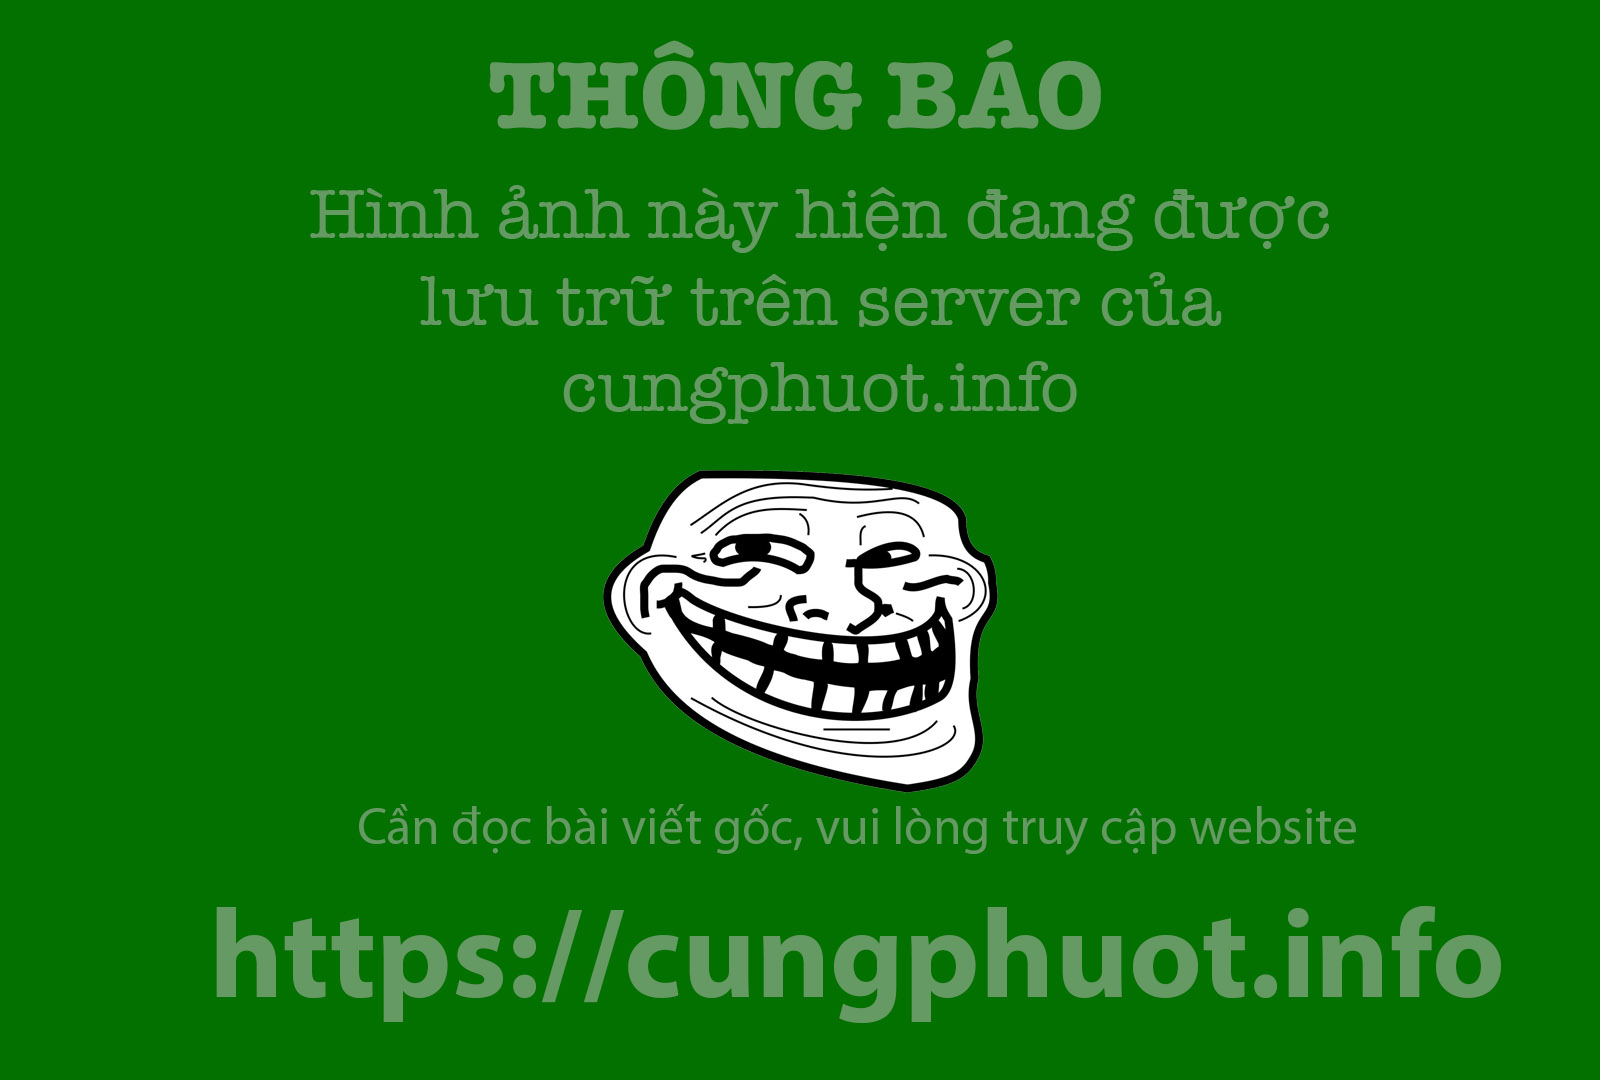 May von nui tren cong troi Muong Long hinh anh 6